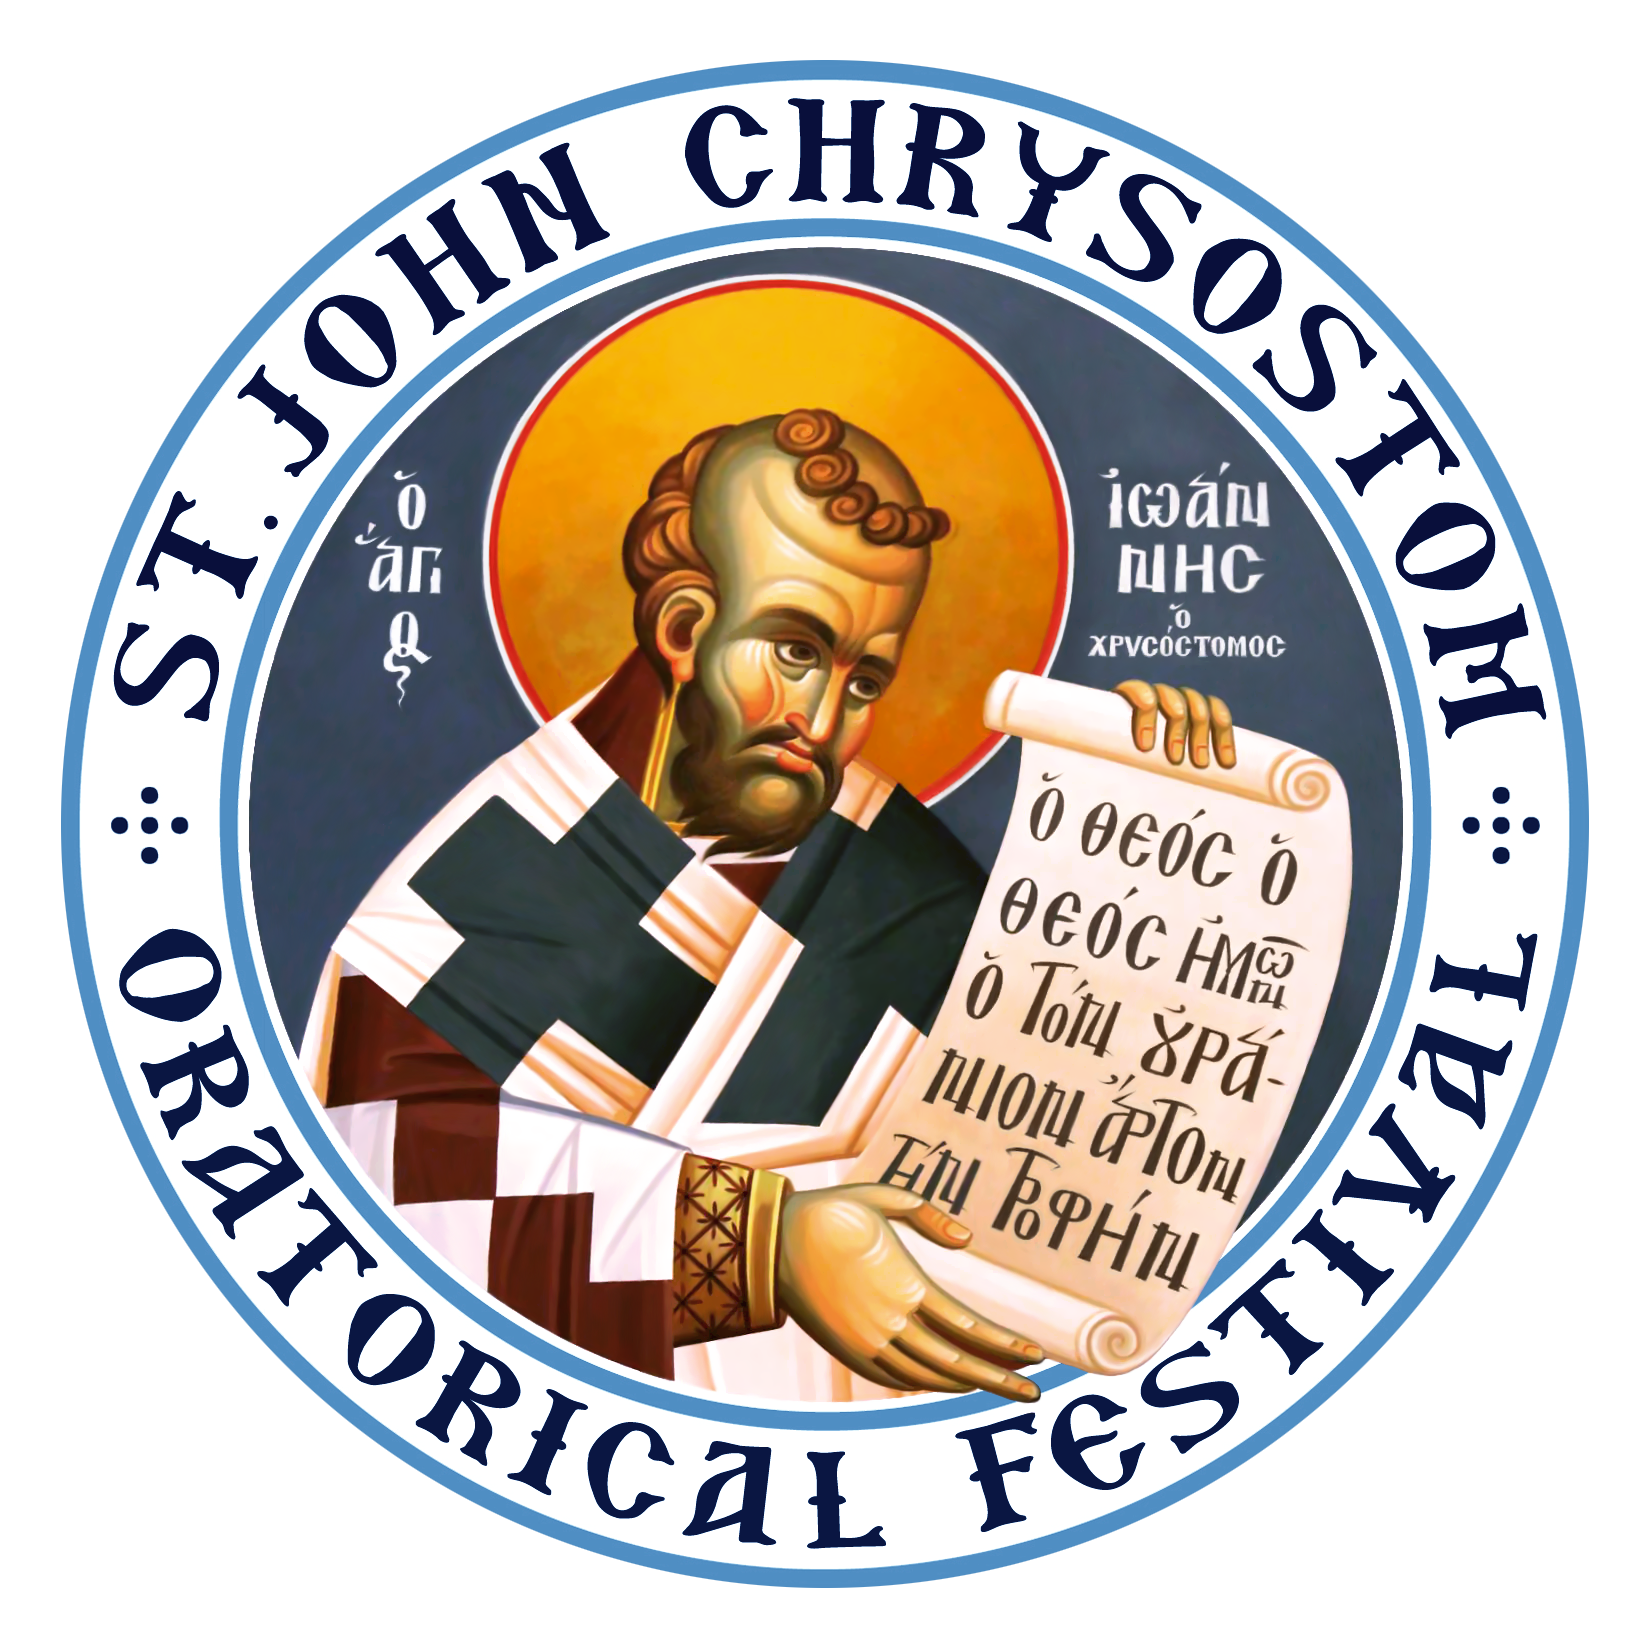 New Leadership for the St. John Chrysostom Oratorical Festival